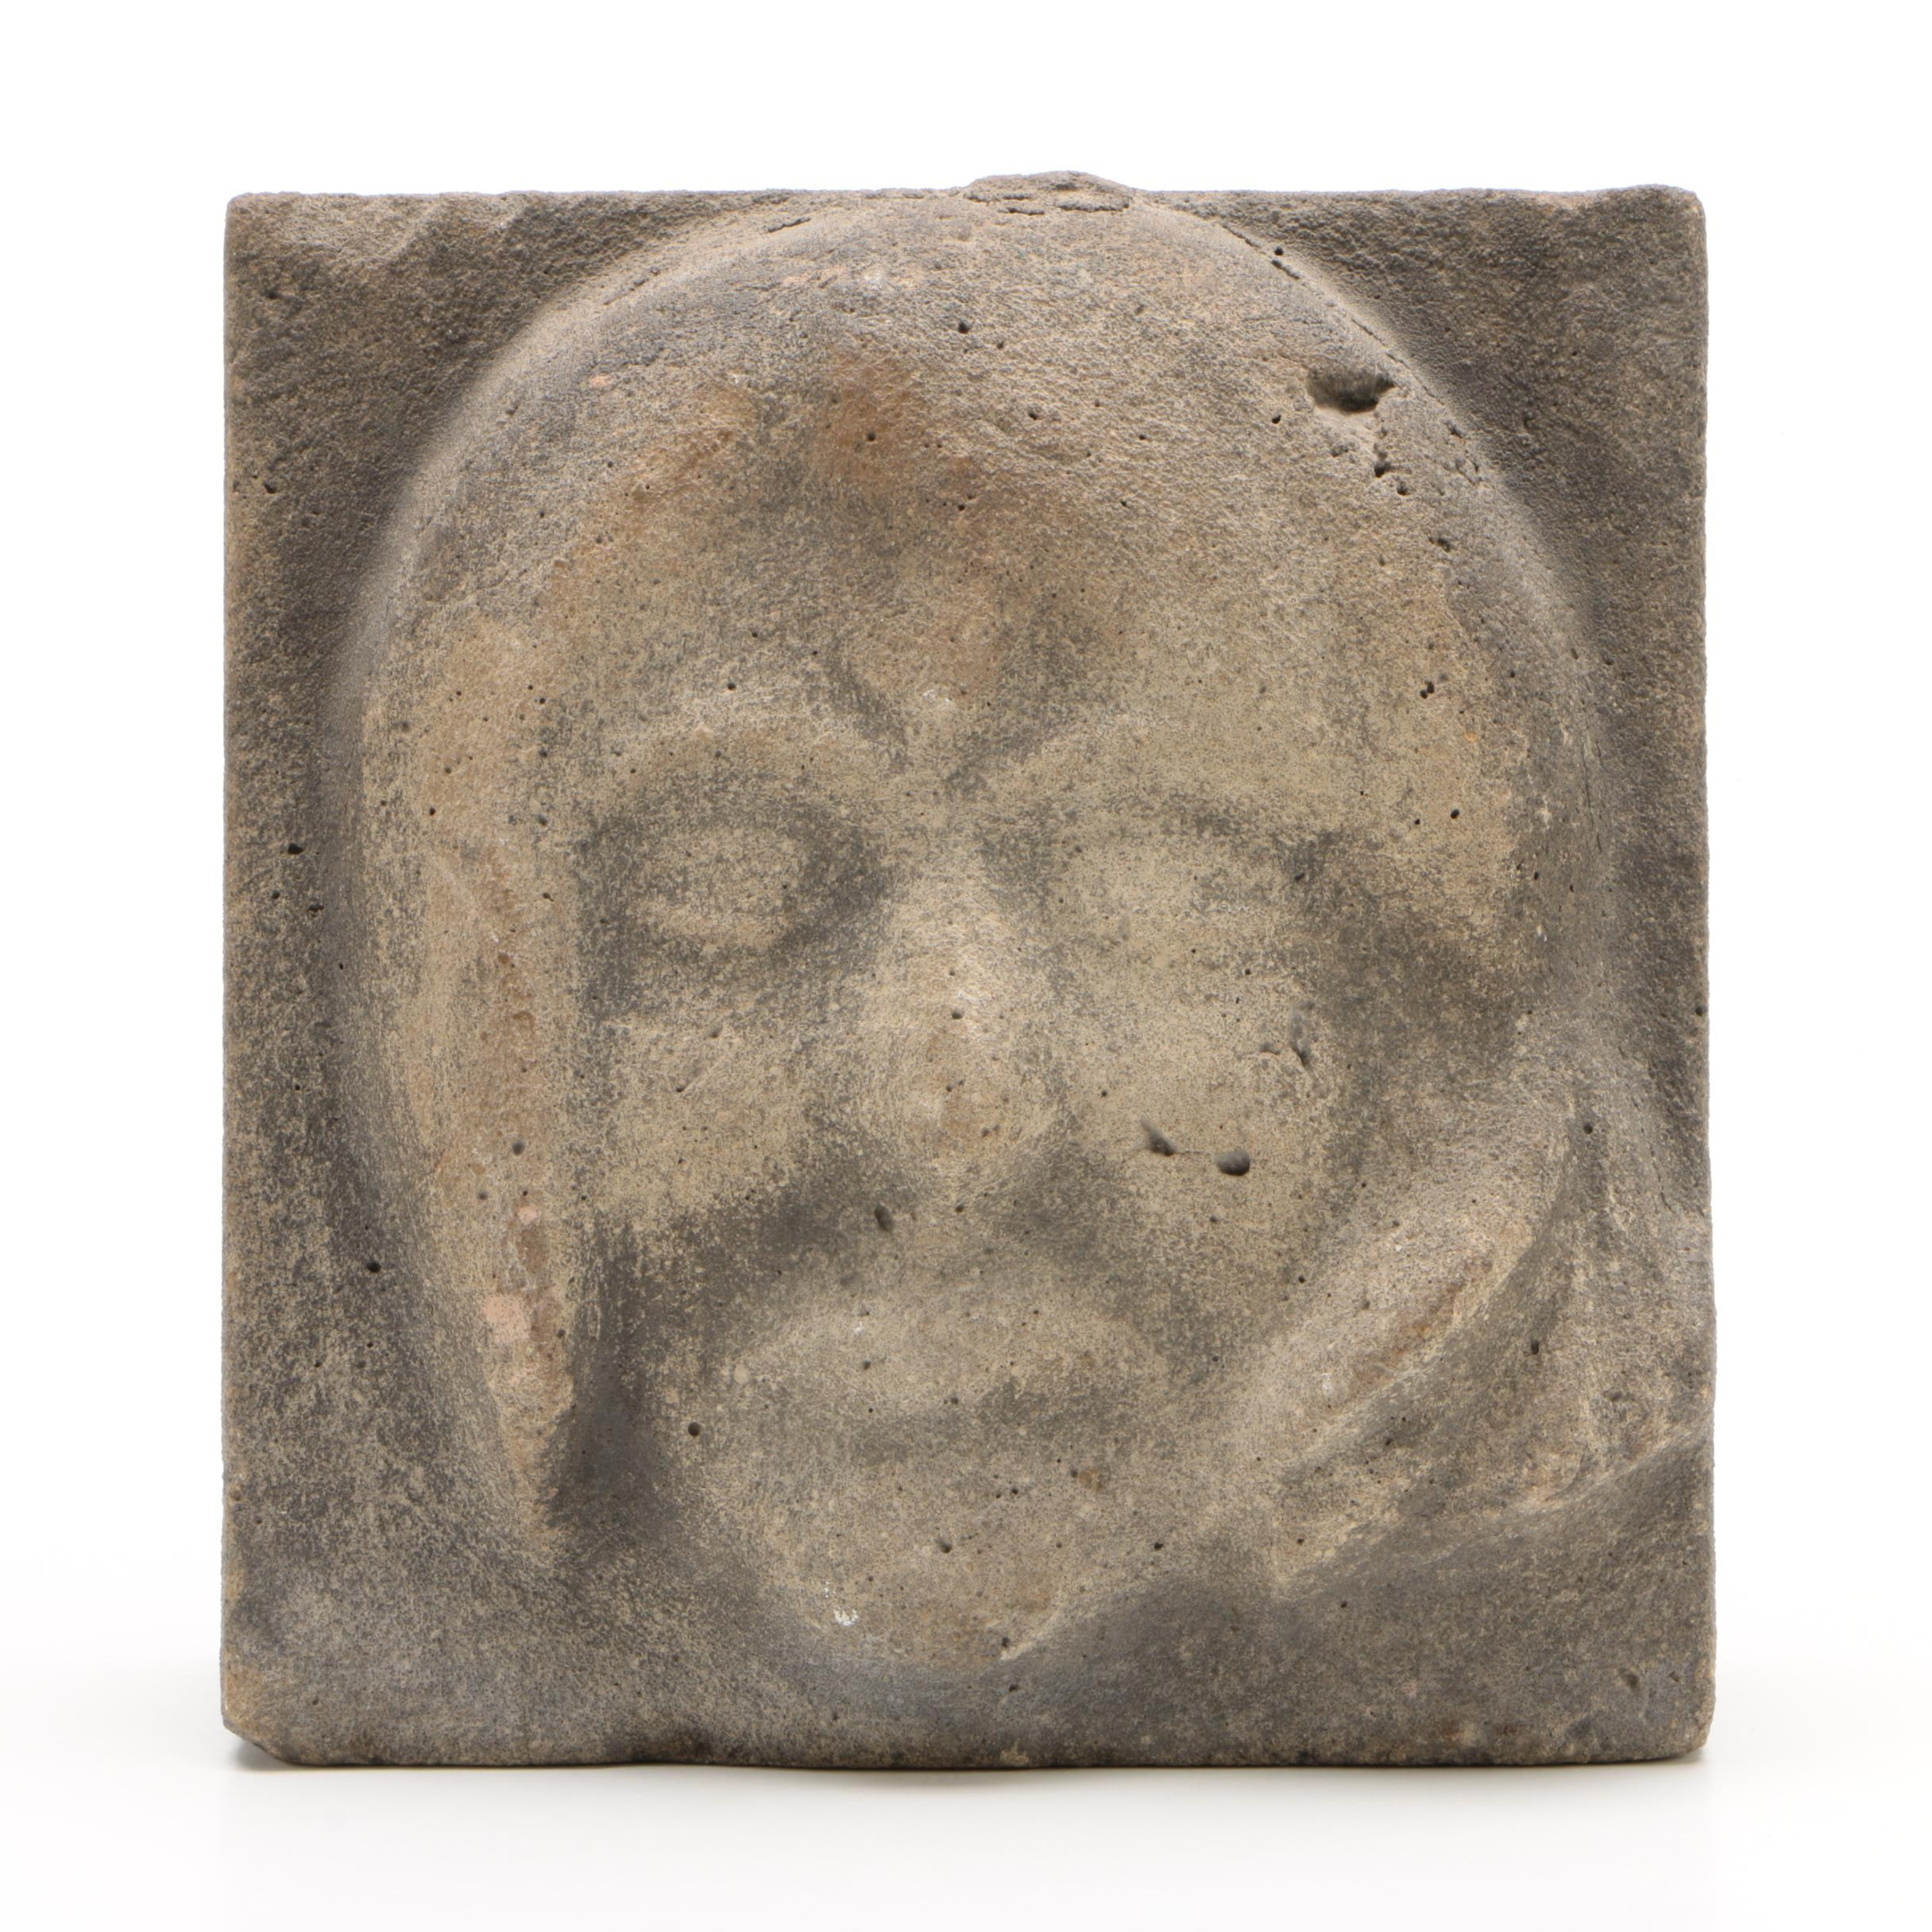 American Folk Art Relief-Carved Stone Face, First Half 20th Century